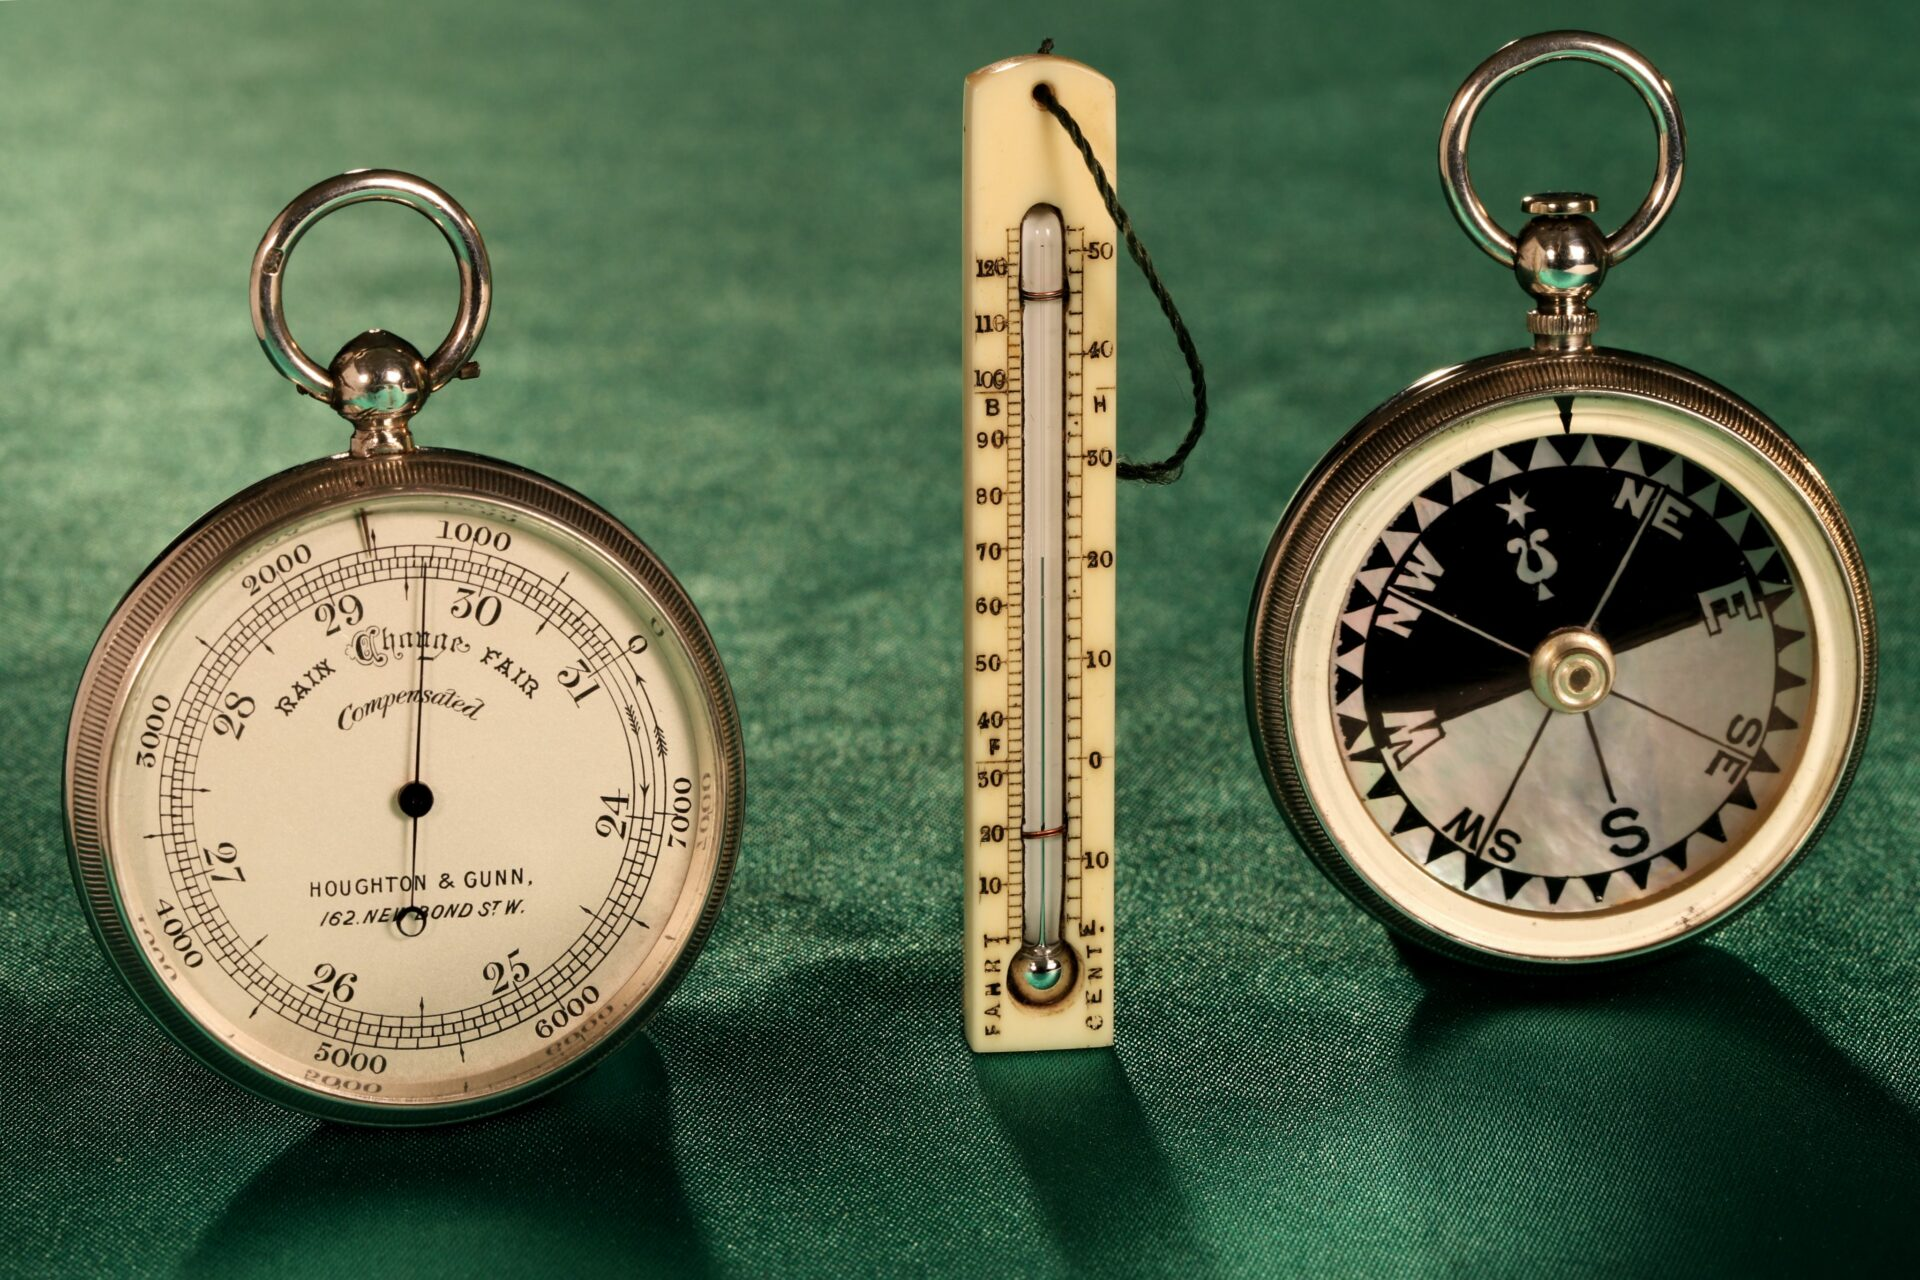 Image of pocket barometer, thermometer and compass from Houghton & Gunn Silver Travel Compendium c1895